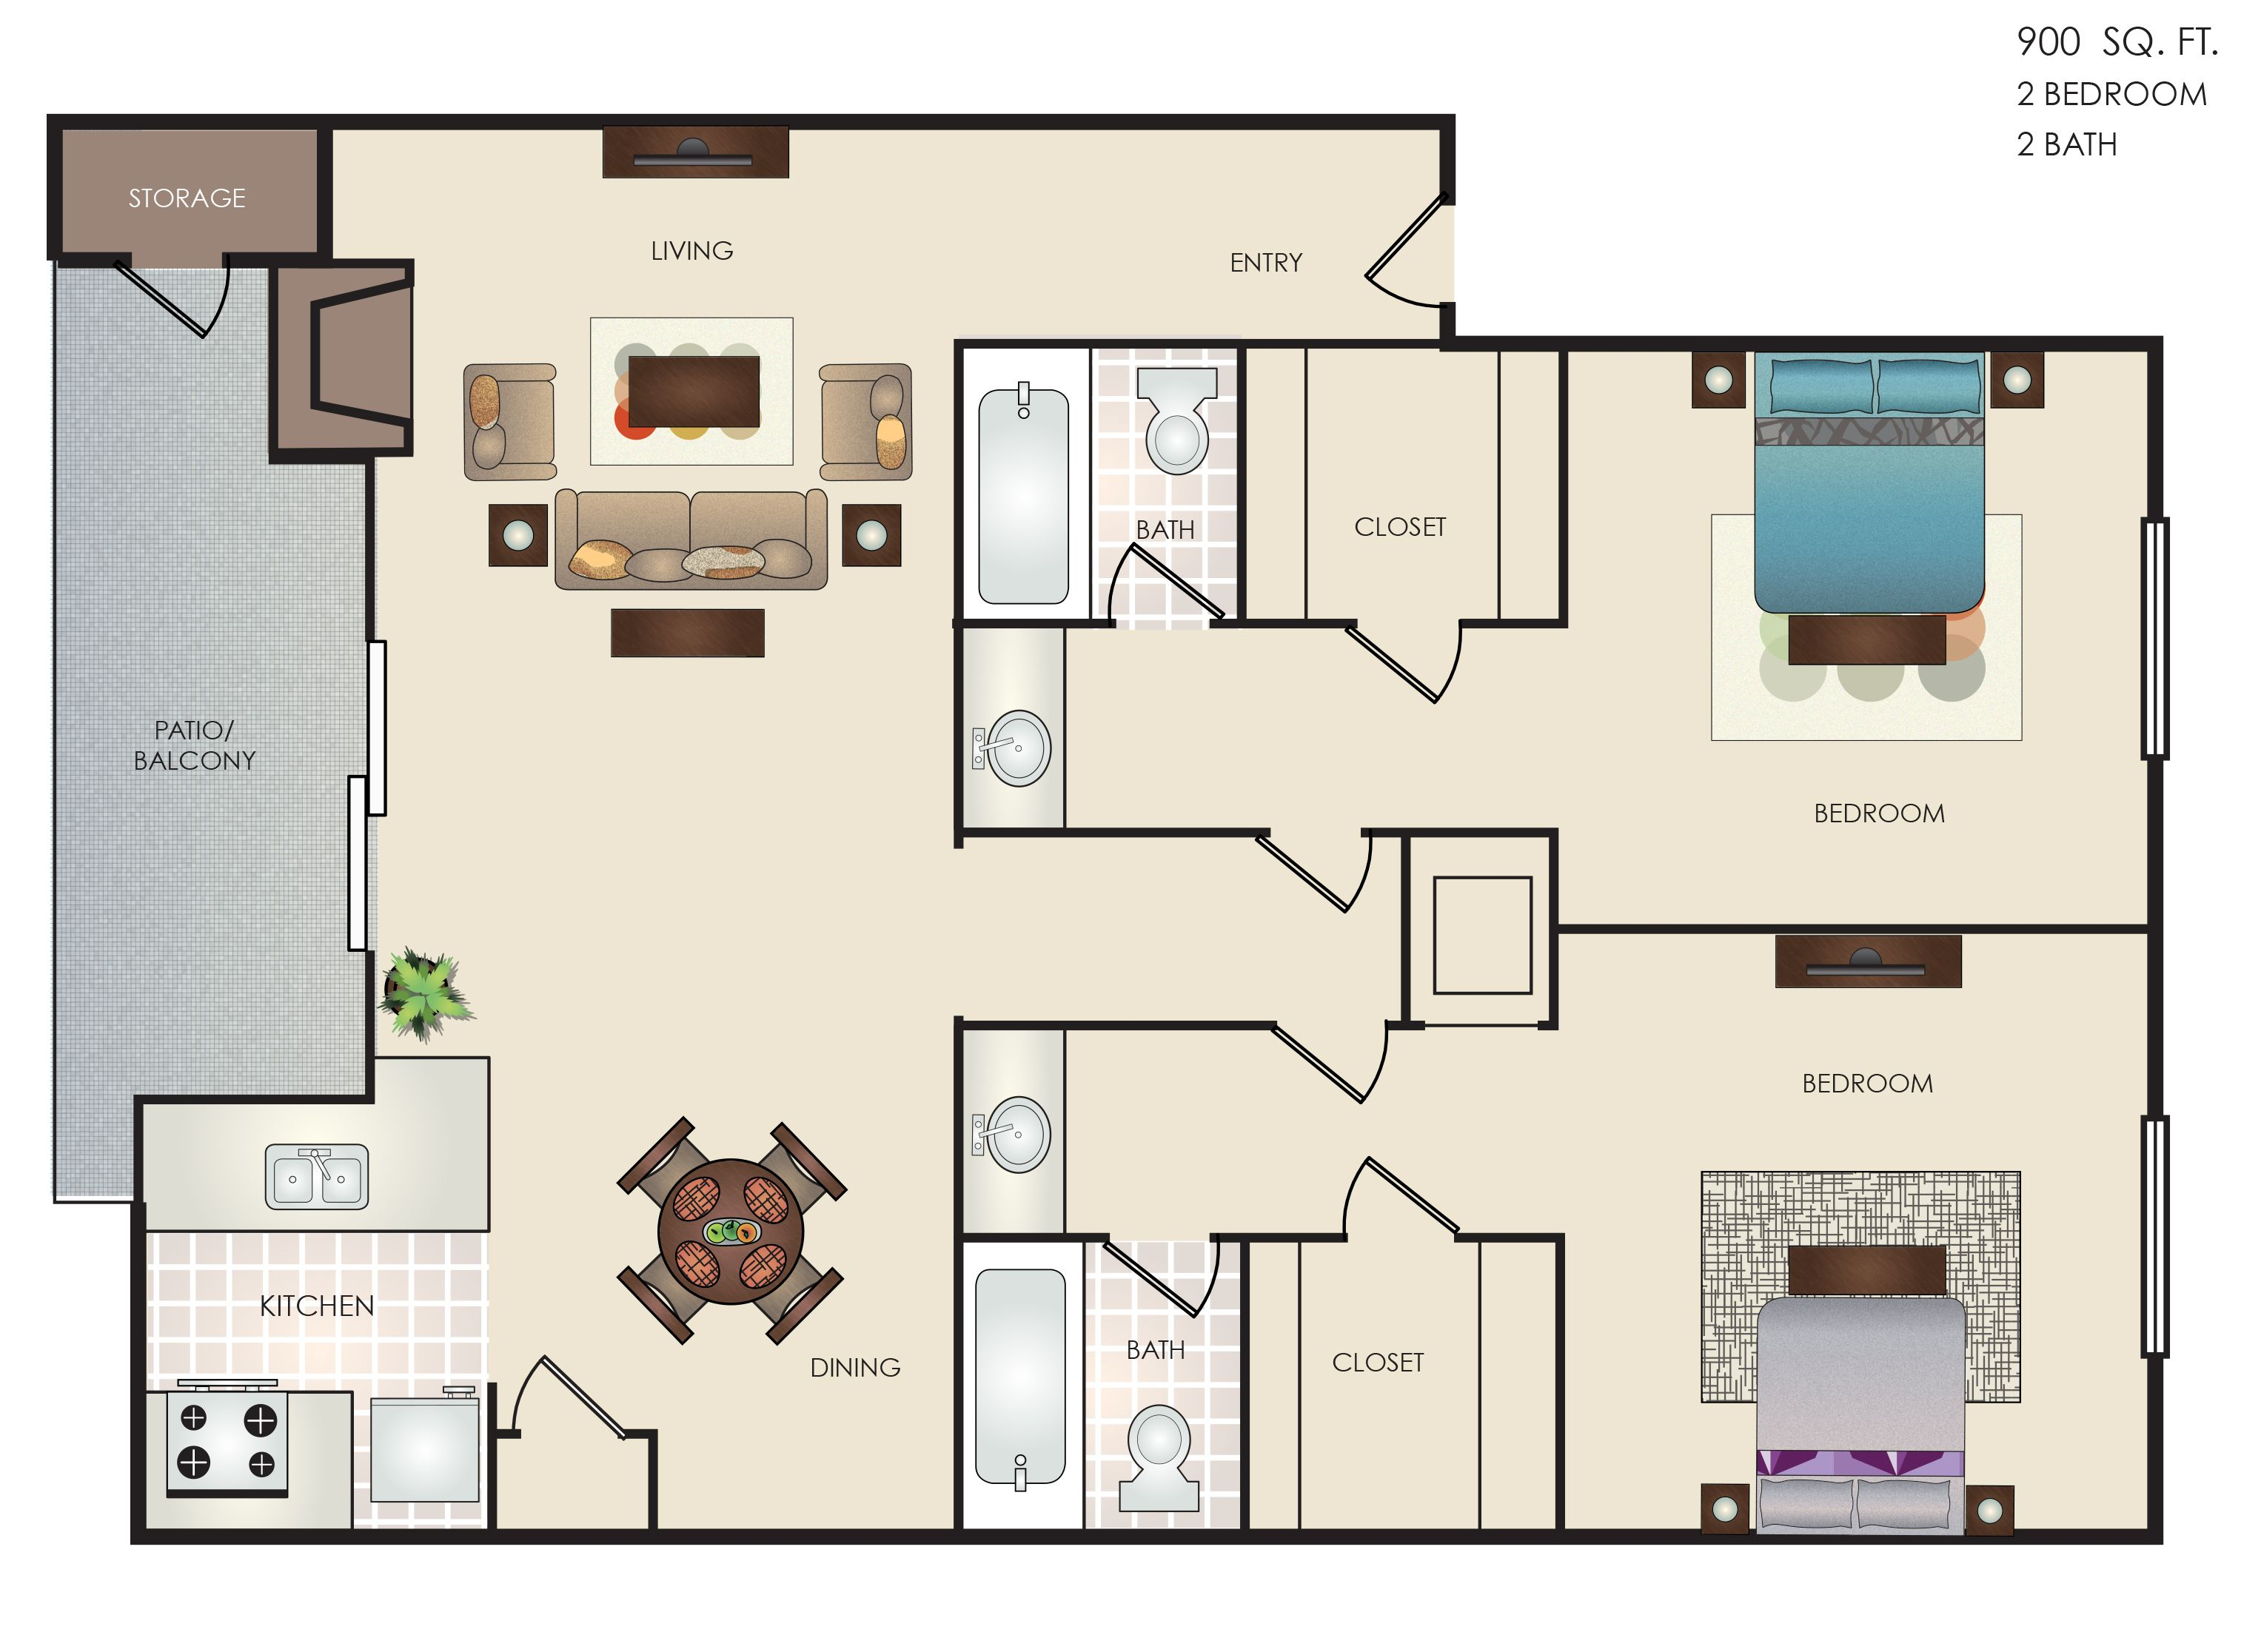 Pin By Altitude Apartment Homes On Floorplans Property Photos Small House Plans House Plans Floor Plans